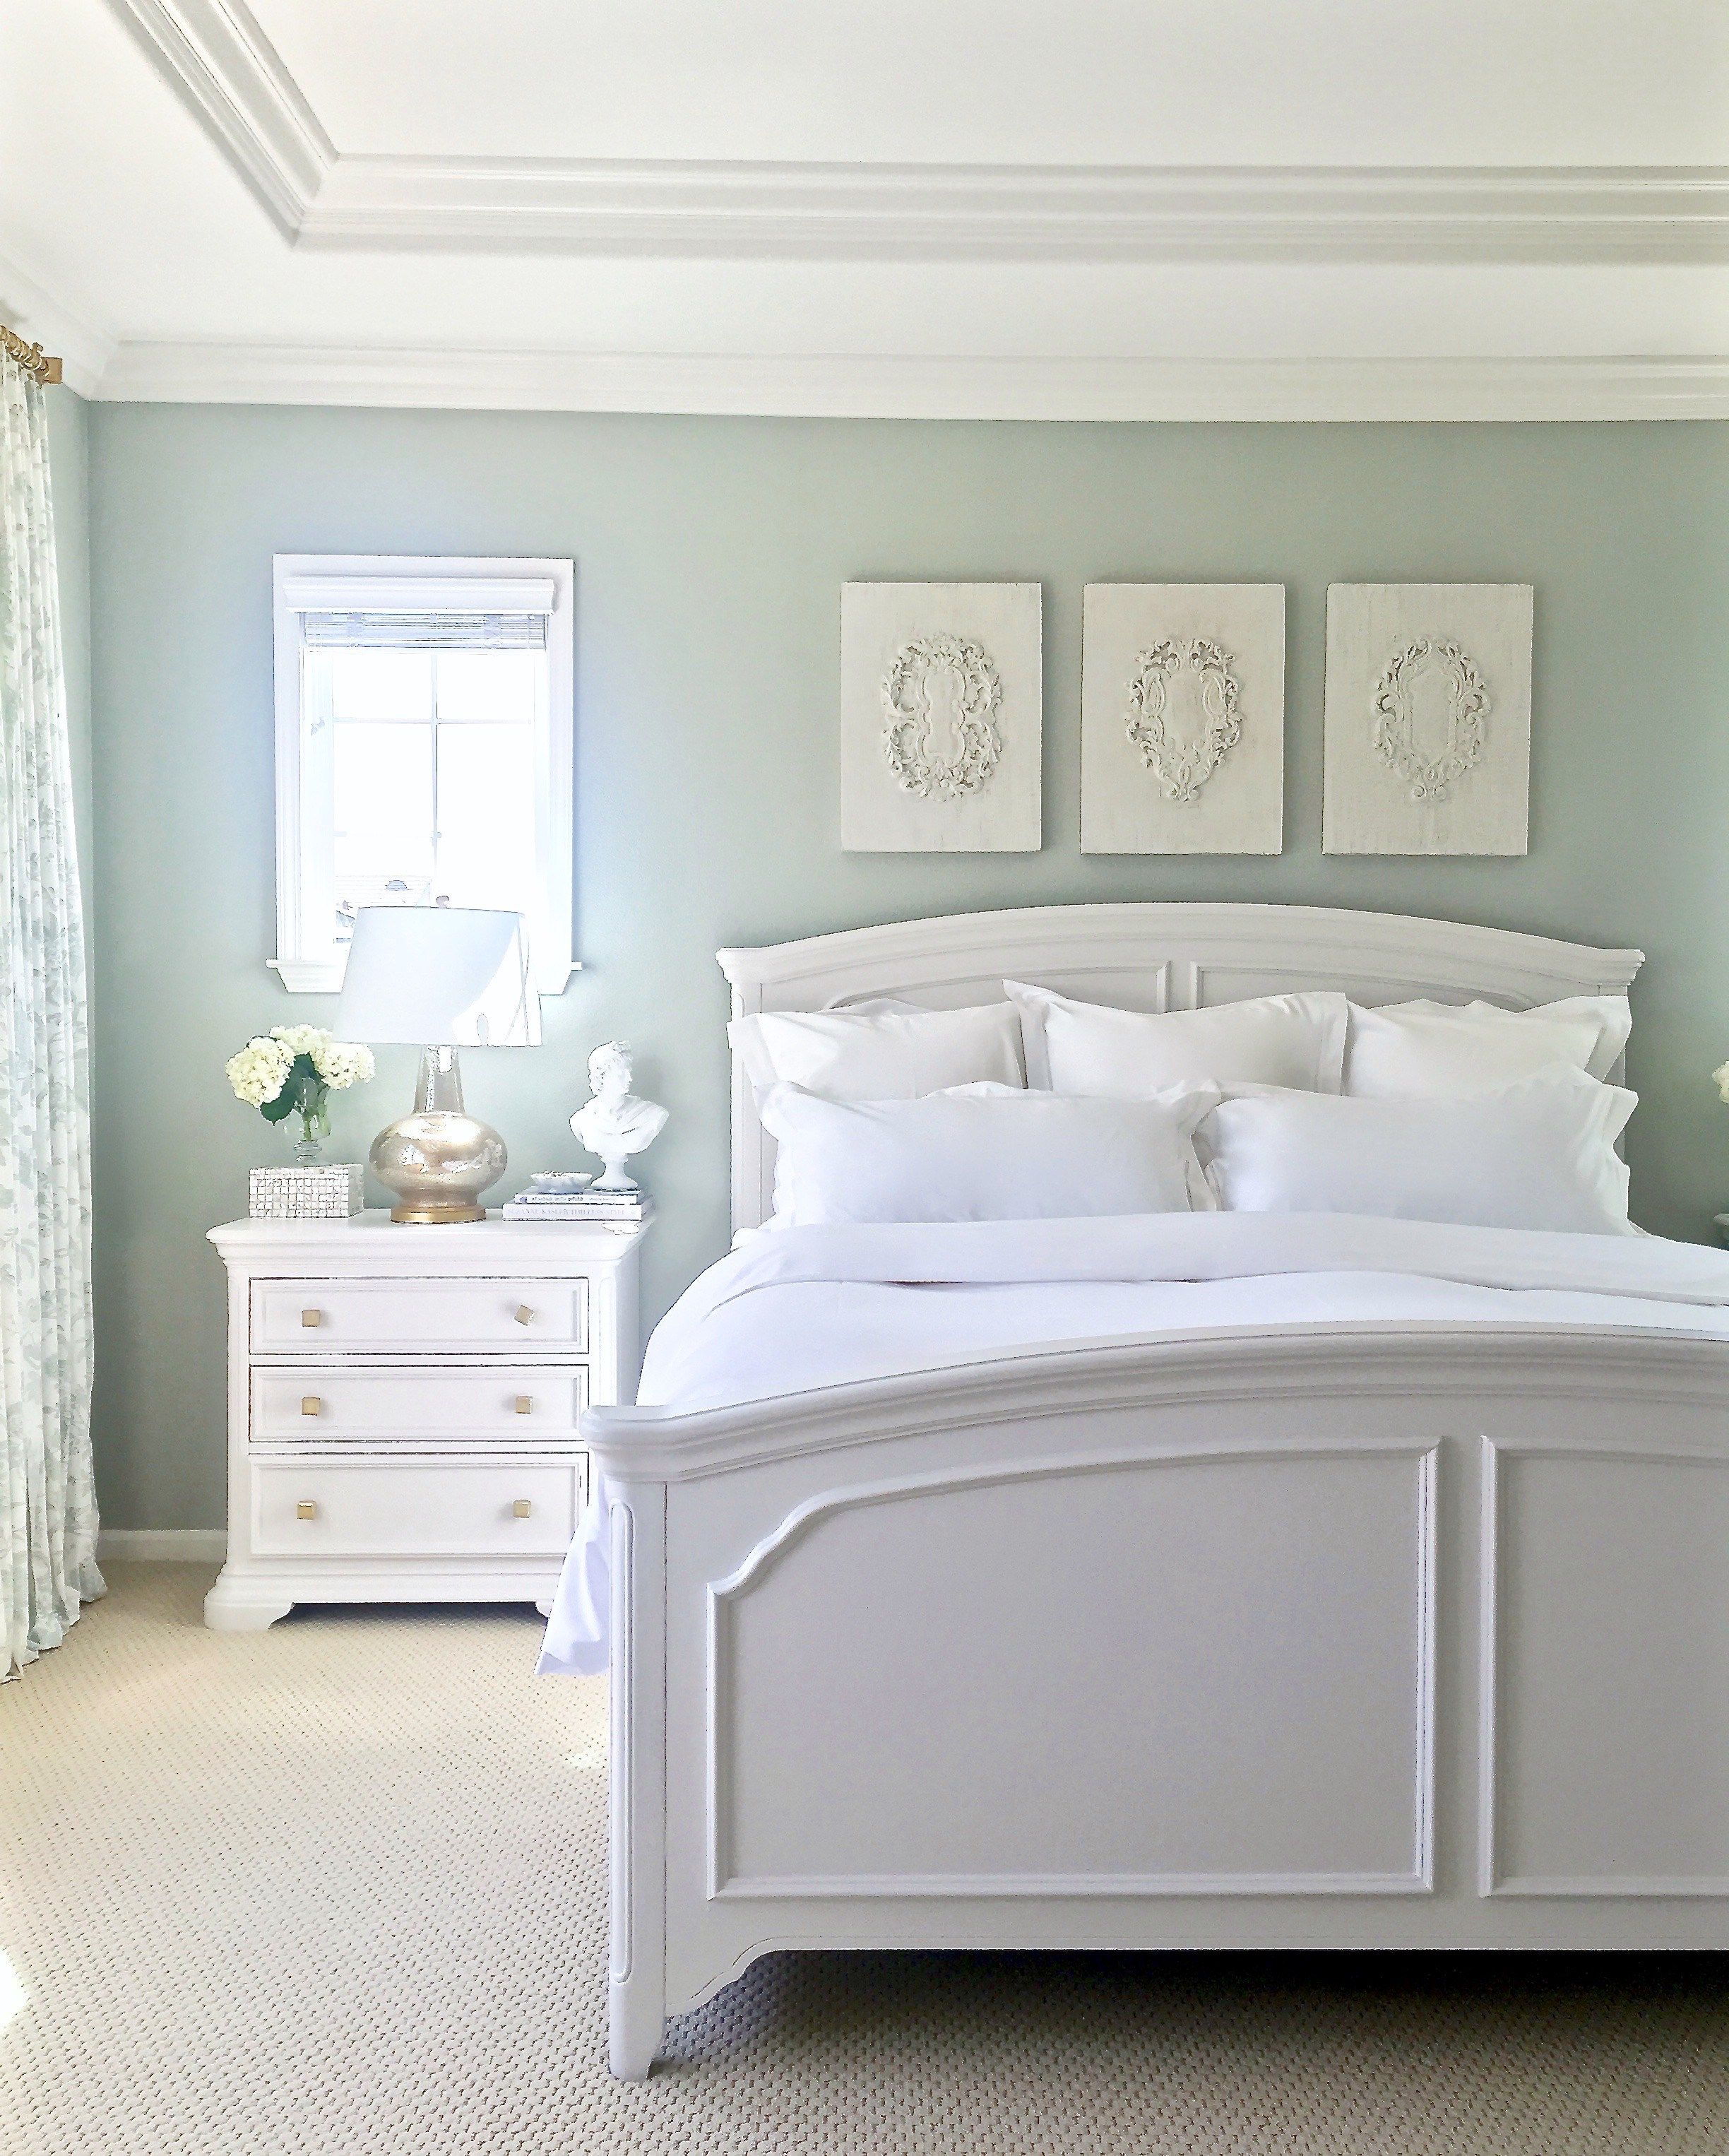 Walls Are Restoration Hardware Silver Sage Gray Green Blue Tranquil Spa Like Feel Furniture Is Painted Sherwin Williams Premium In Satin Finish Elder